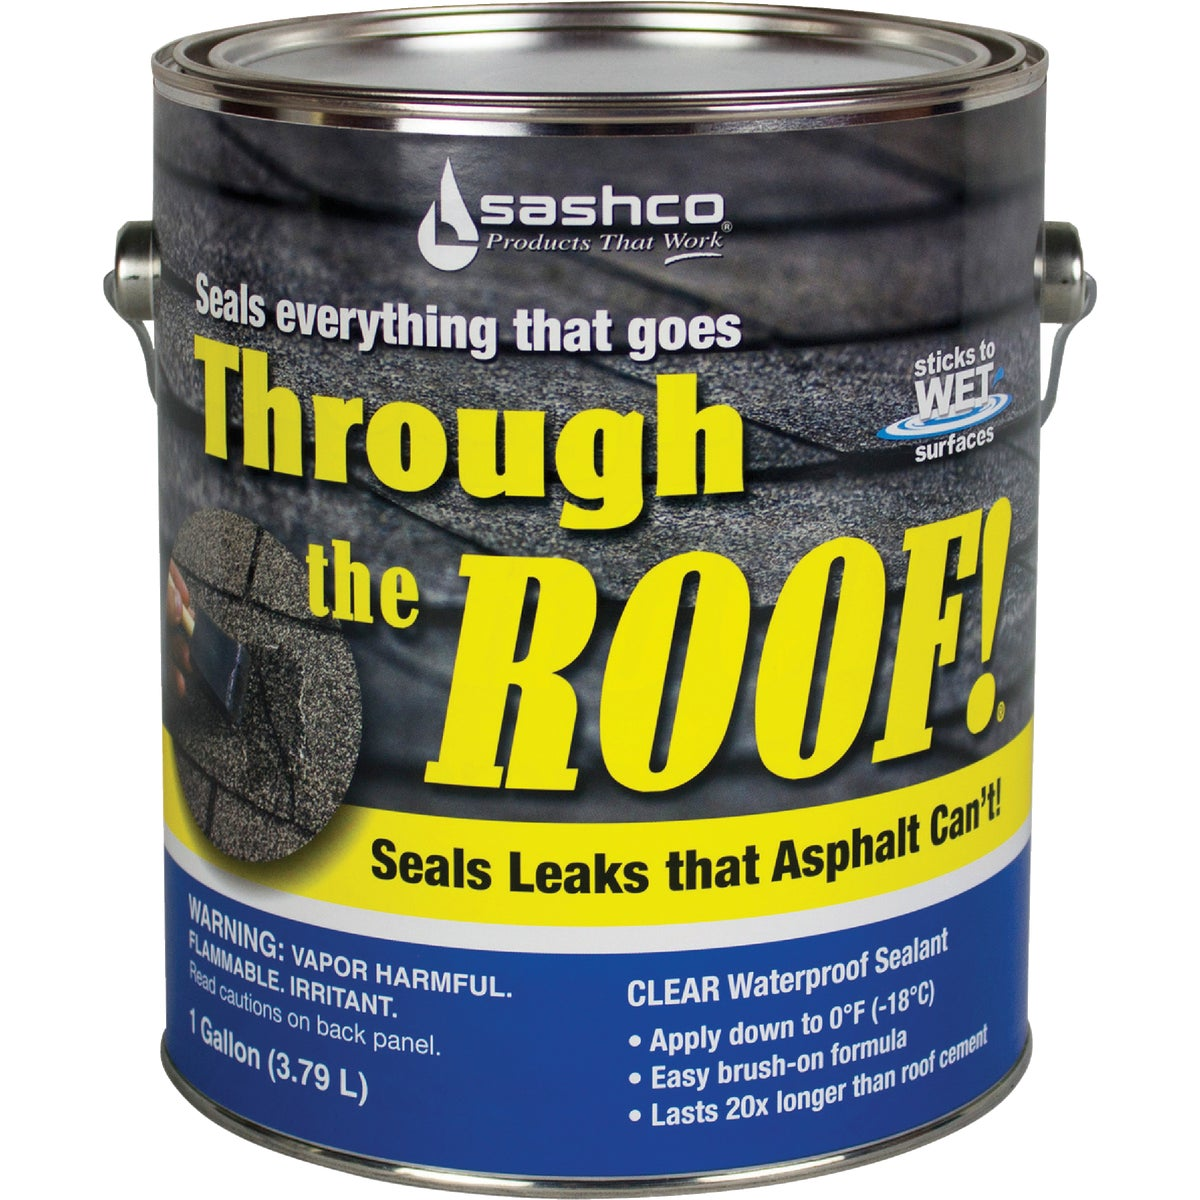 GAL CLEAR ROOF SEALANT - 14004 by Sashco Sealants Inc